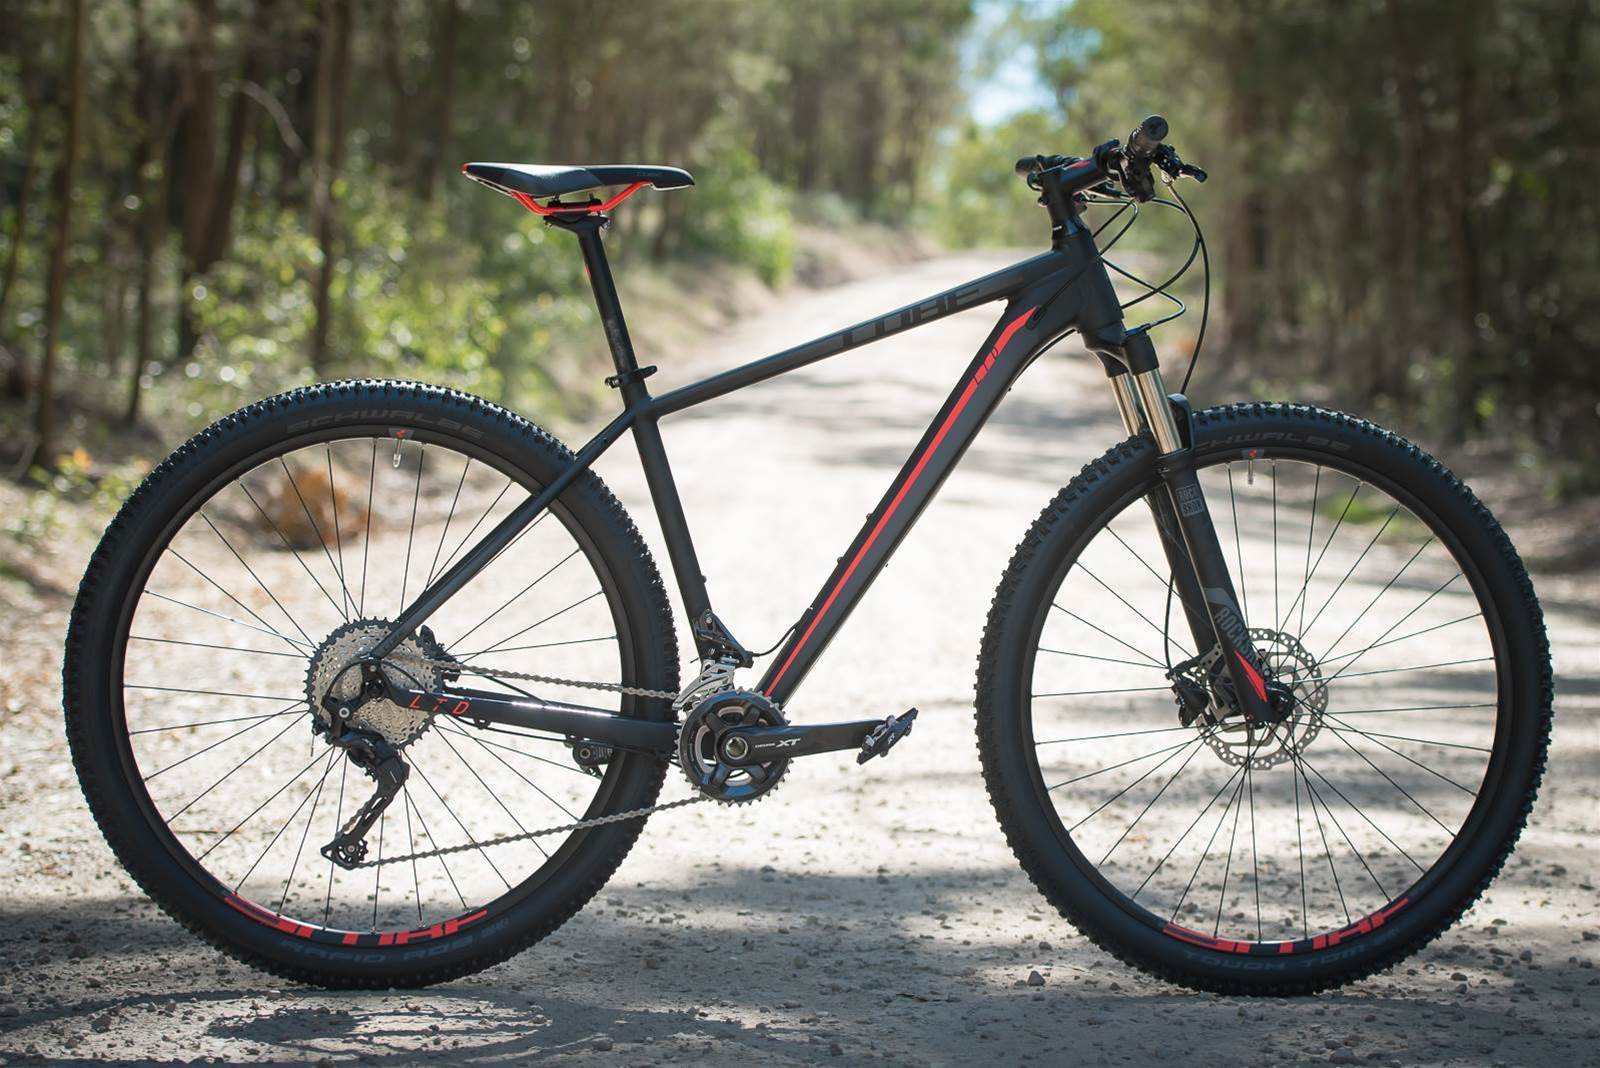 TESTED: Cube Limited Pro HT